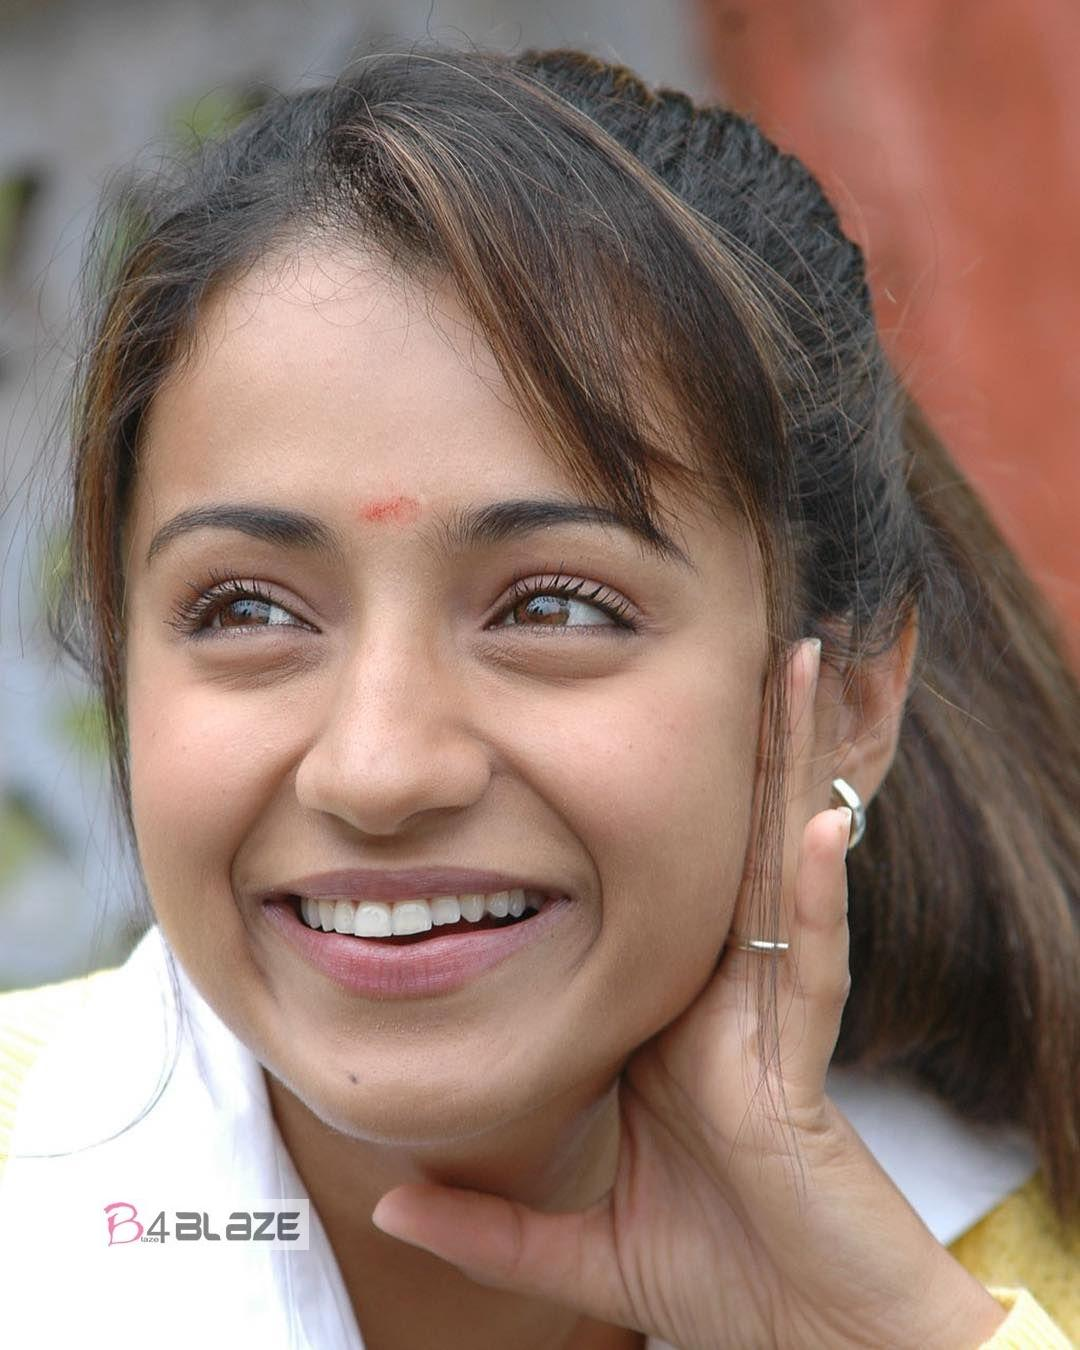 Trisha rare and unseen photo collection (3)